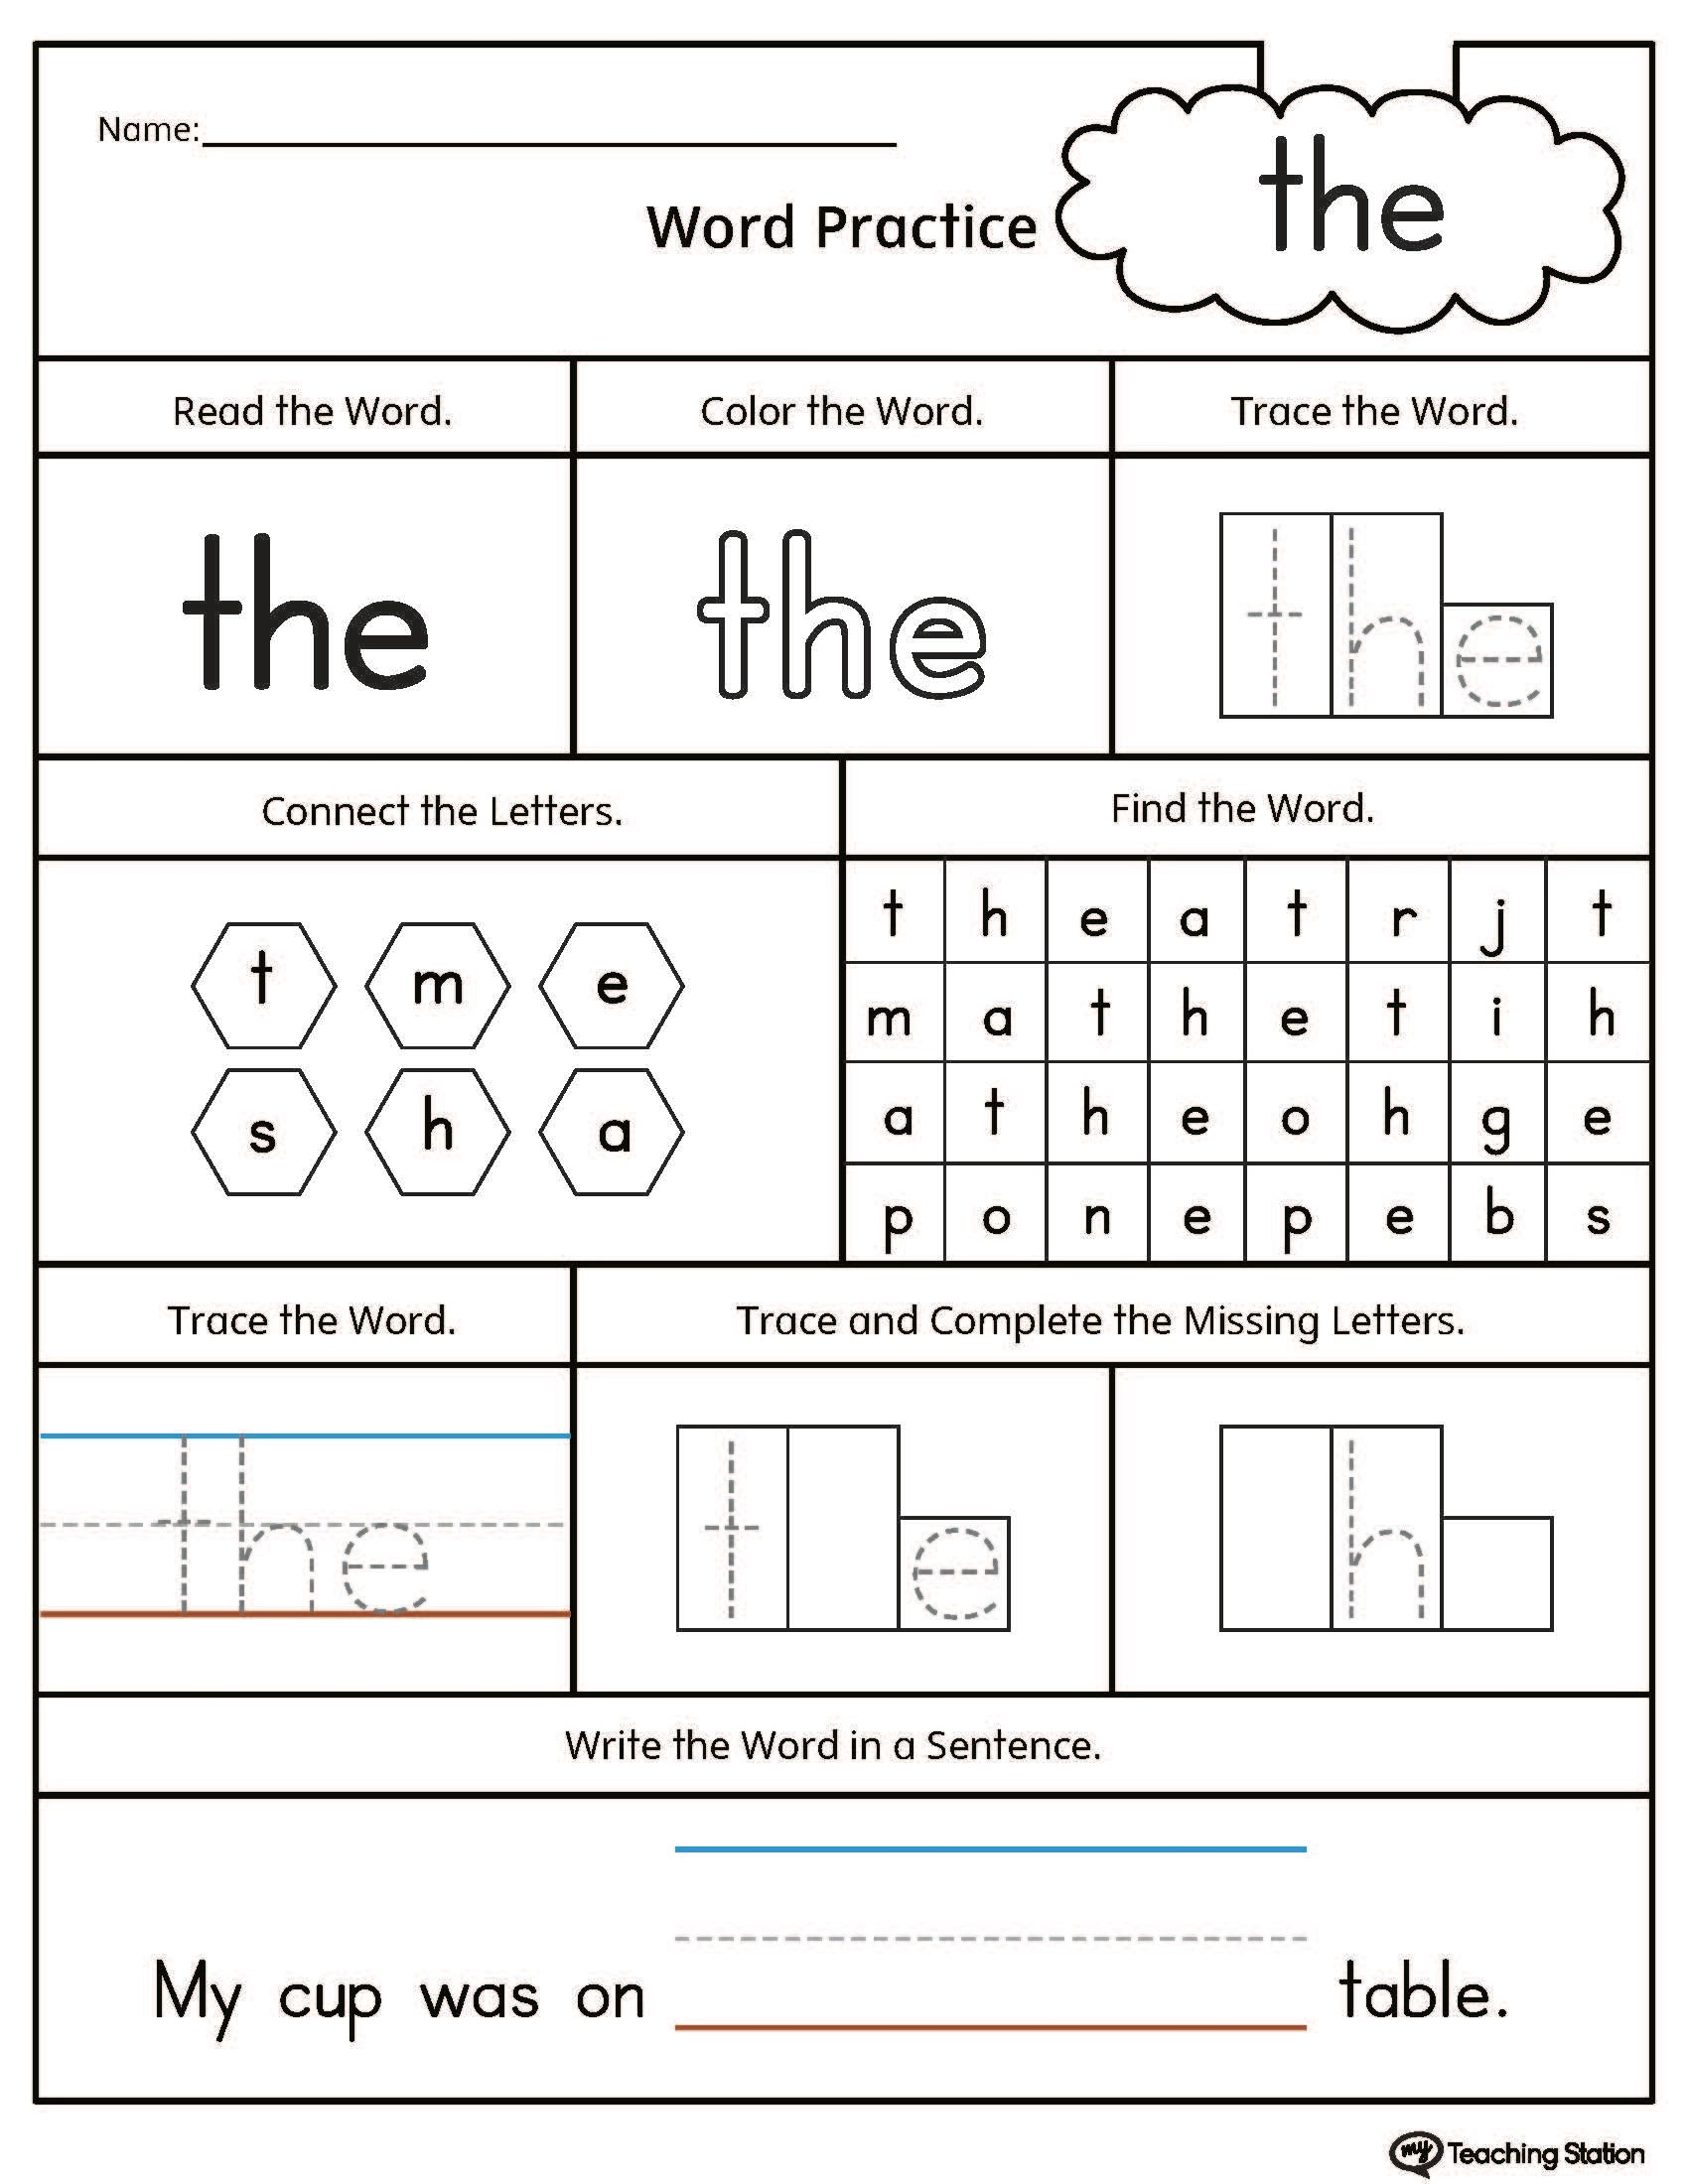 3 Letter Words Printable Worksheet